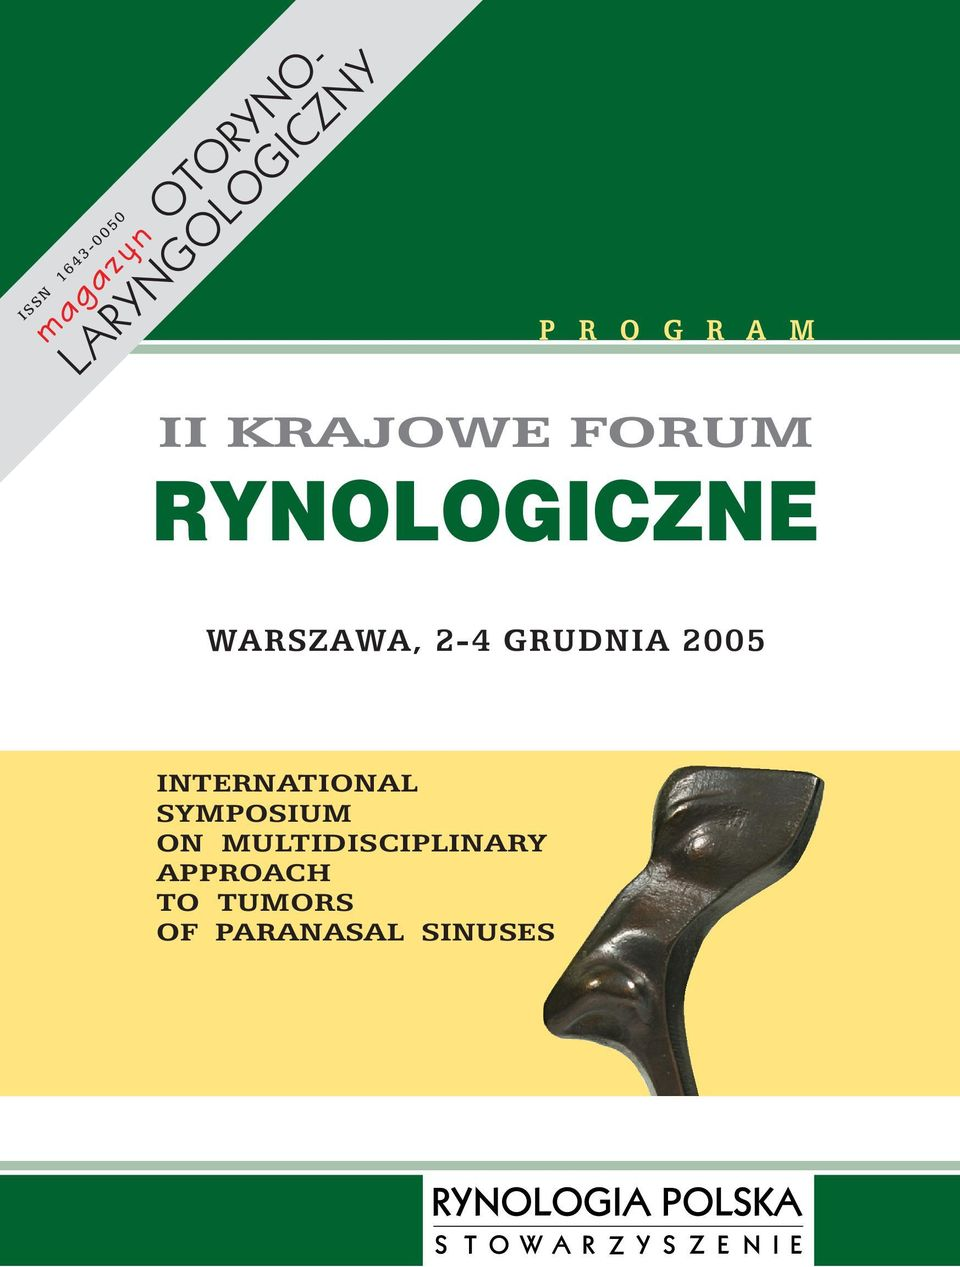 INTERNATIONAL SYMPOSIUM ON